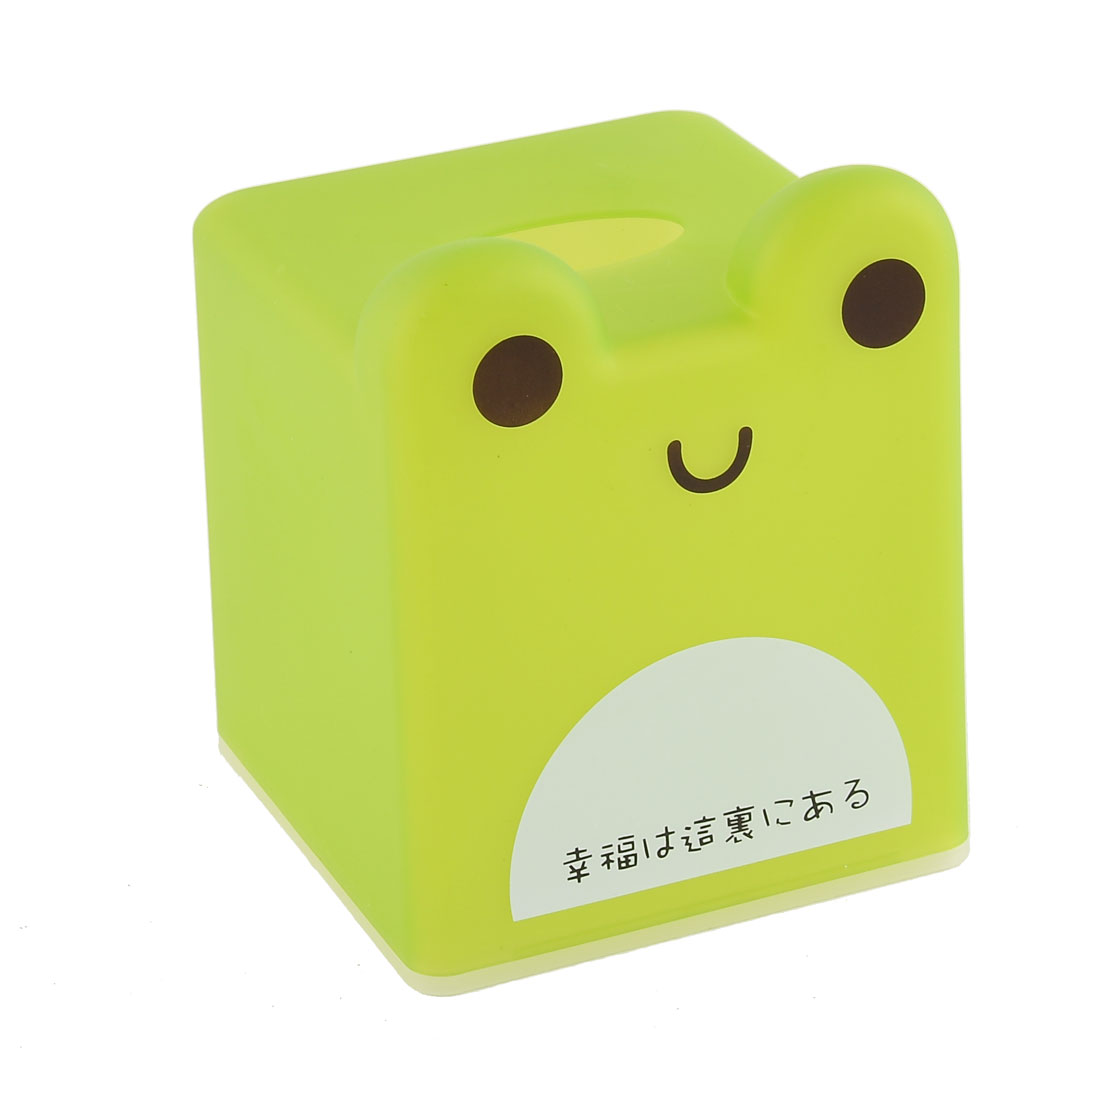 Household Bathroom Square Shaped Frog Pattern Napkin Roll Tissue Paper Box Case Holder Cover Storage Green